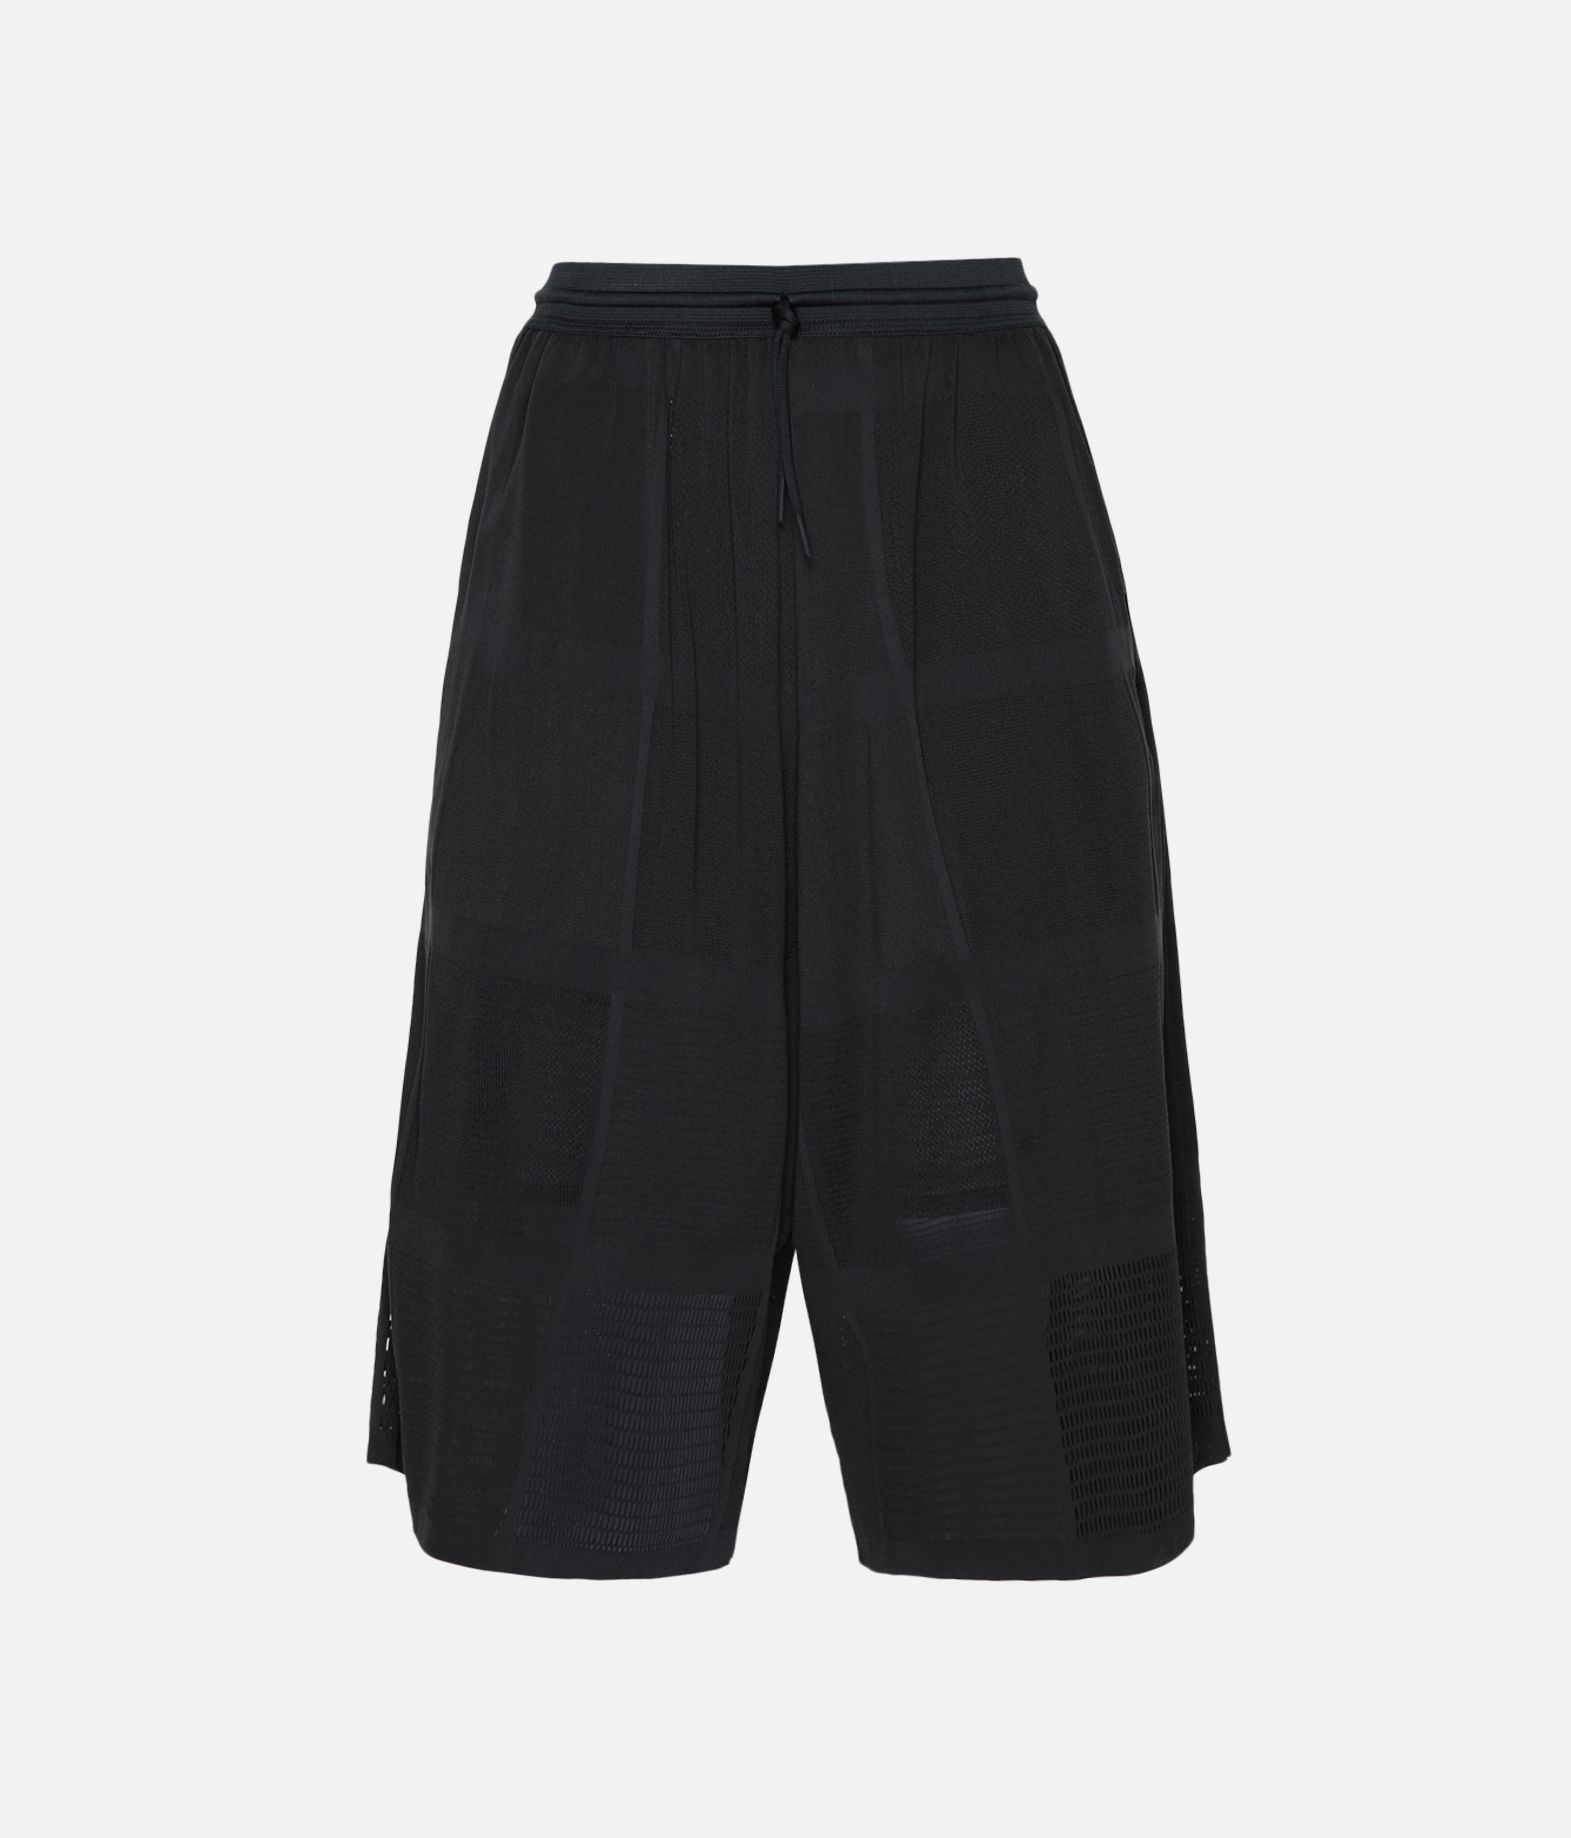 Y-3 Y-3 Patchwork Shorts Bermuda Woman f